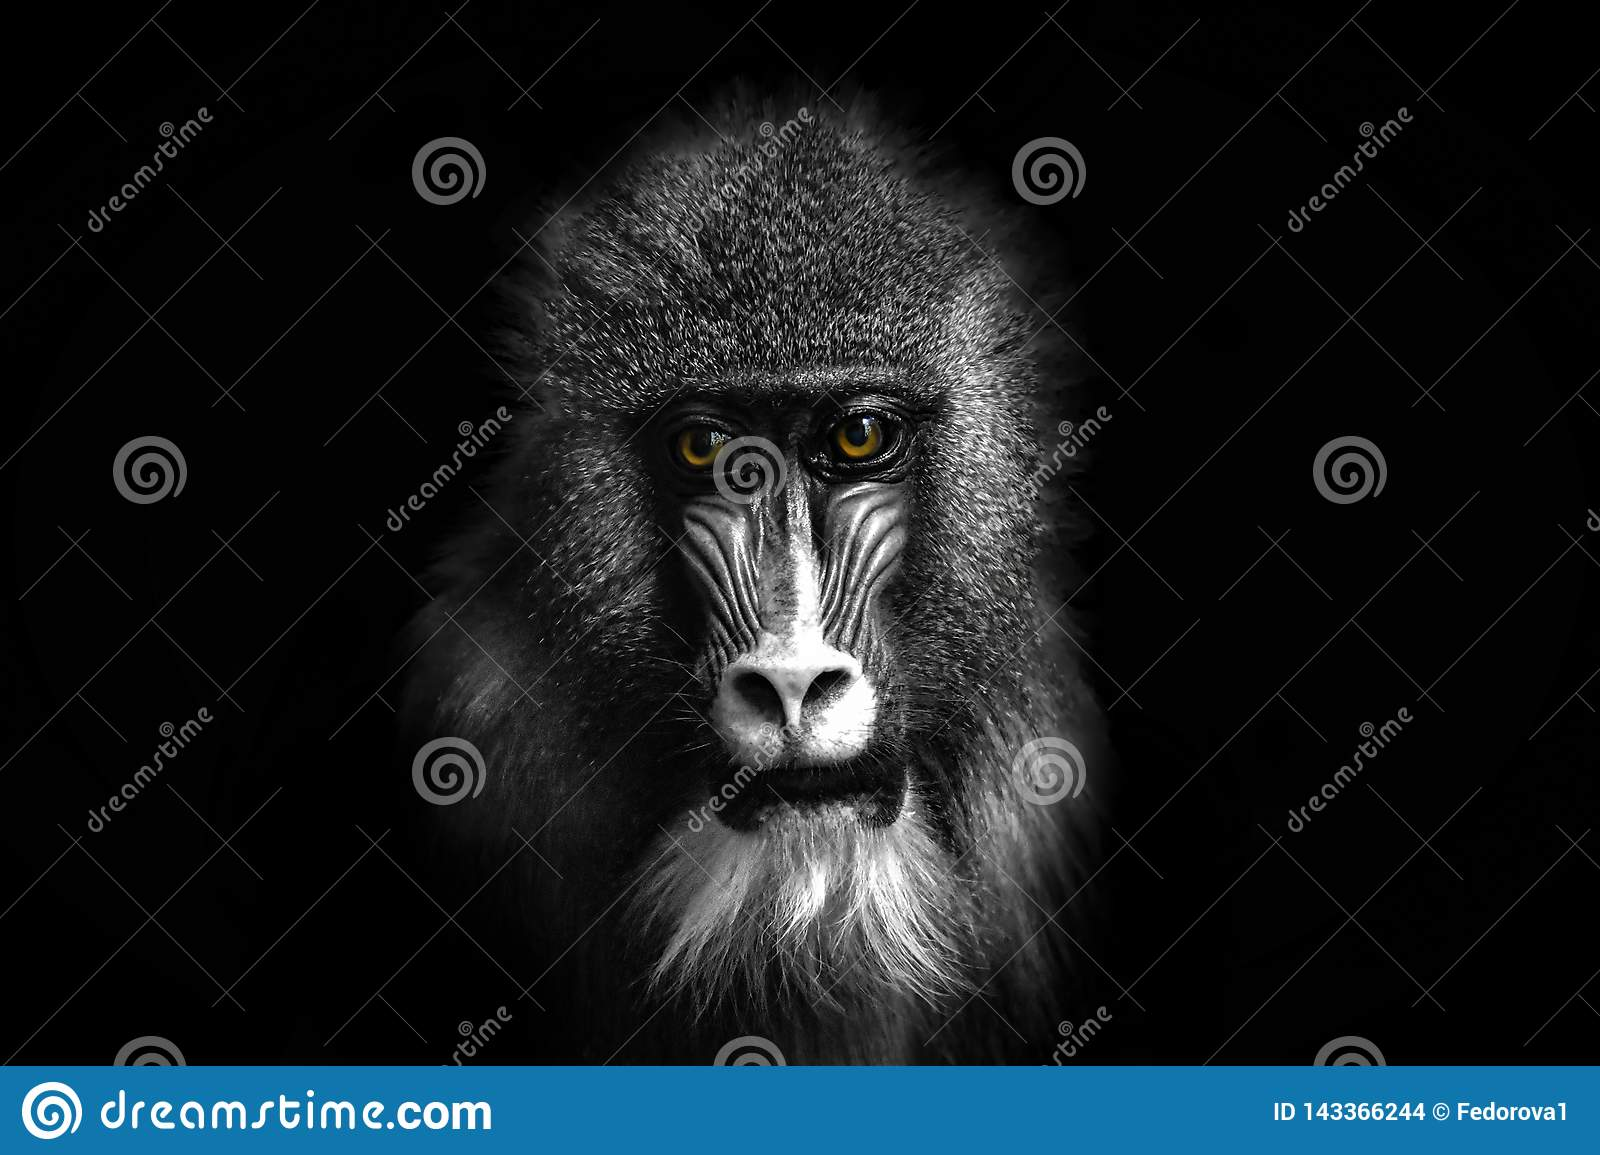 Black and white portrait of a baboon monkey with colored eyes